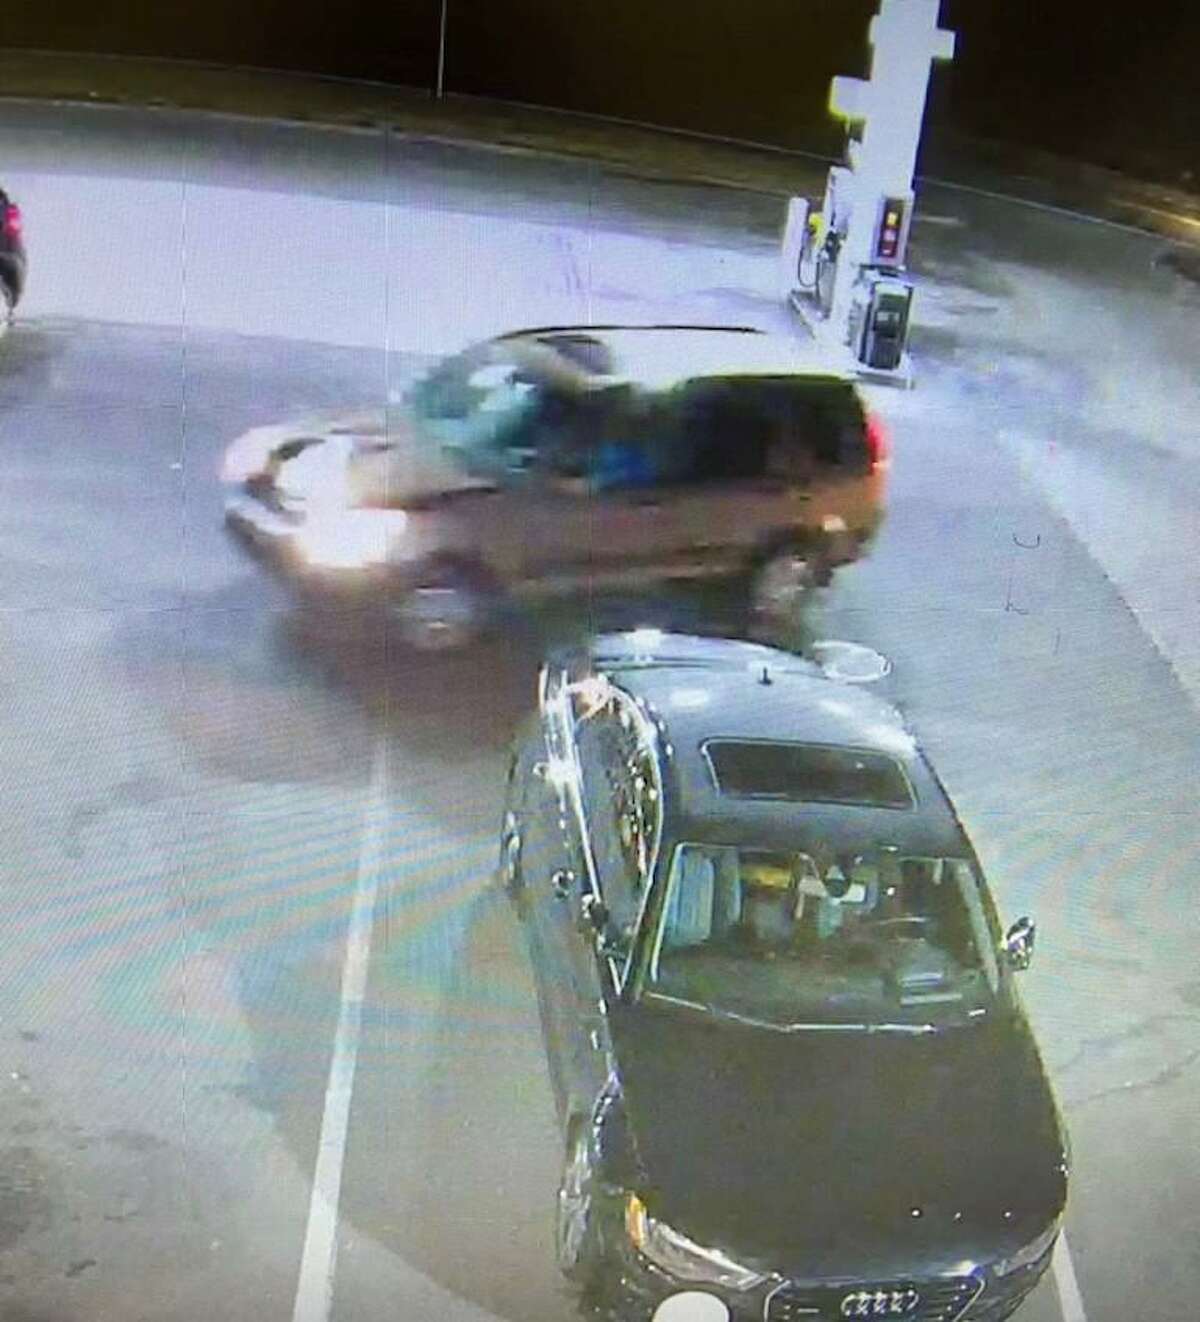 Waterbury police are asking for the public's help locating this vehicle, described as a gold or tan-colored Honda CRV, after they said it was involved in a fatal pedestrian accident Tuesday, March 23, 2021